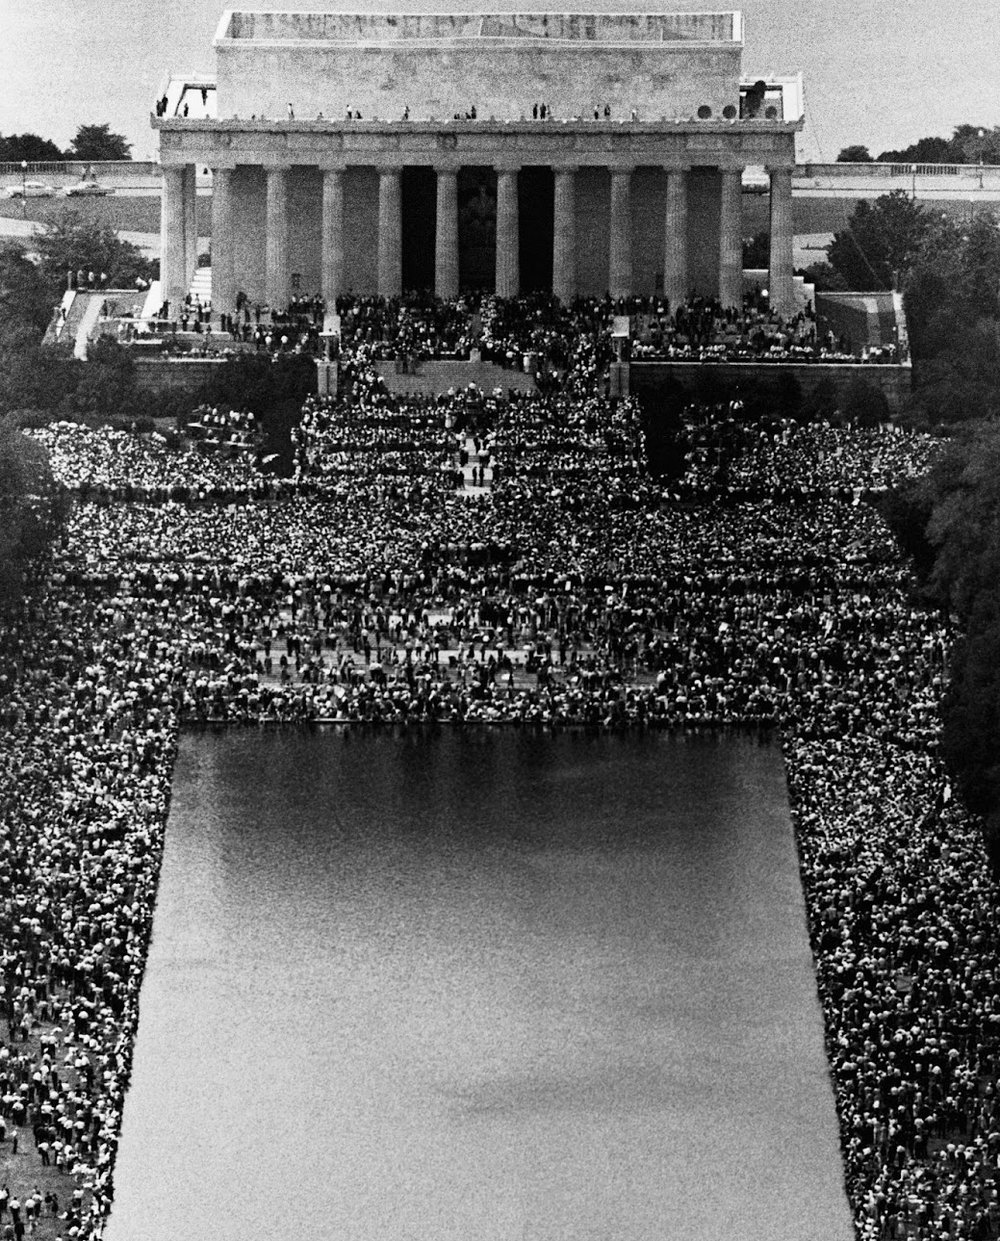 "Today is Martin Luther King, Jr. Day here in the United States - honoring the Baptist minister, activist, humanitarian, and leader of the African-American Civil Rights Movement. This overview captures the Lincoln Memorial during King's famous ""I Have A Dream Speech"" in Washington, D.C. on August 28, 1963. In front of more than 250,000 civil rights supporters, King described his dreams of freedom and equality arising from a land of slavery and hatred.   Photo credit: Life"